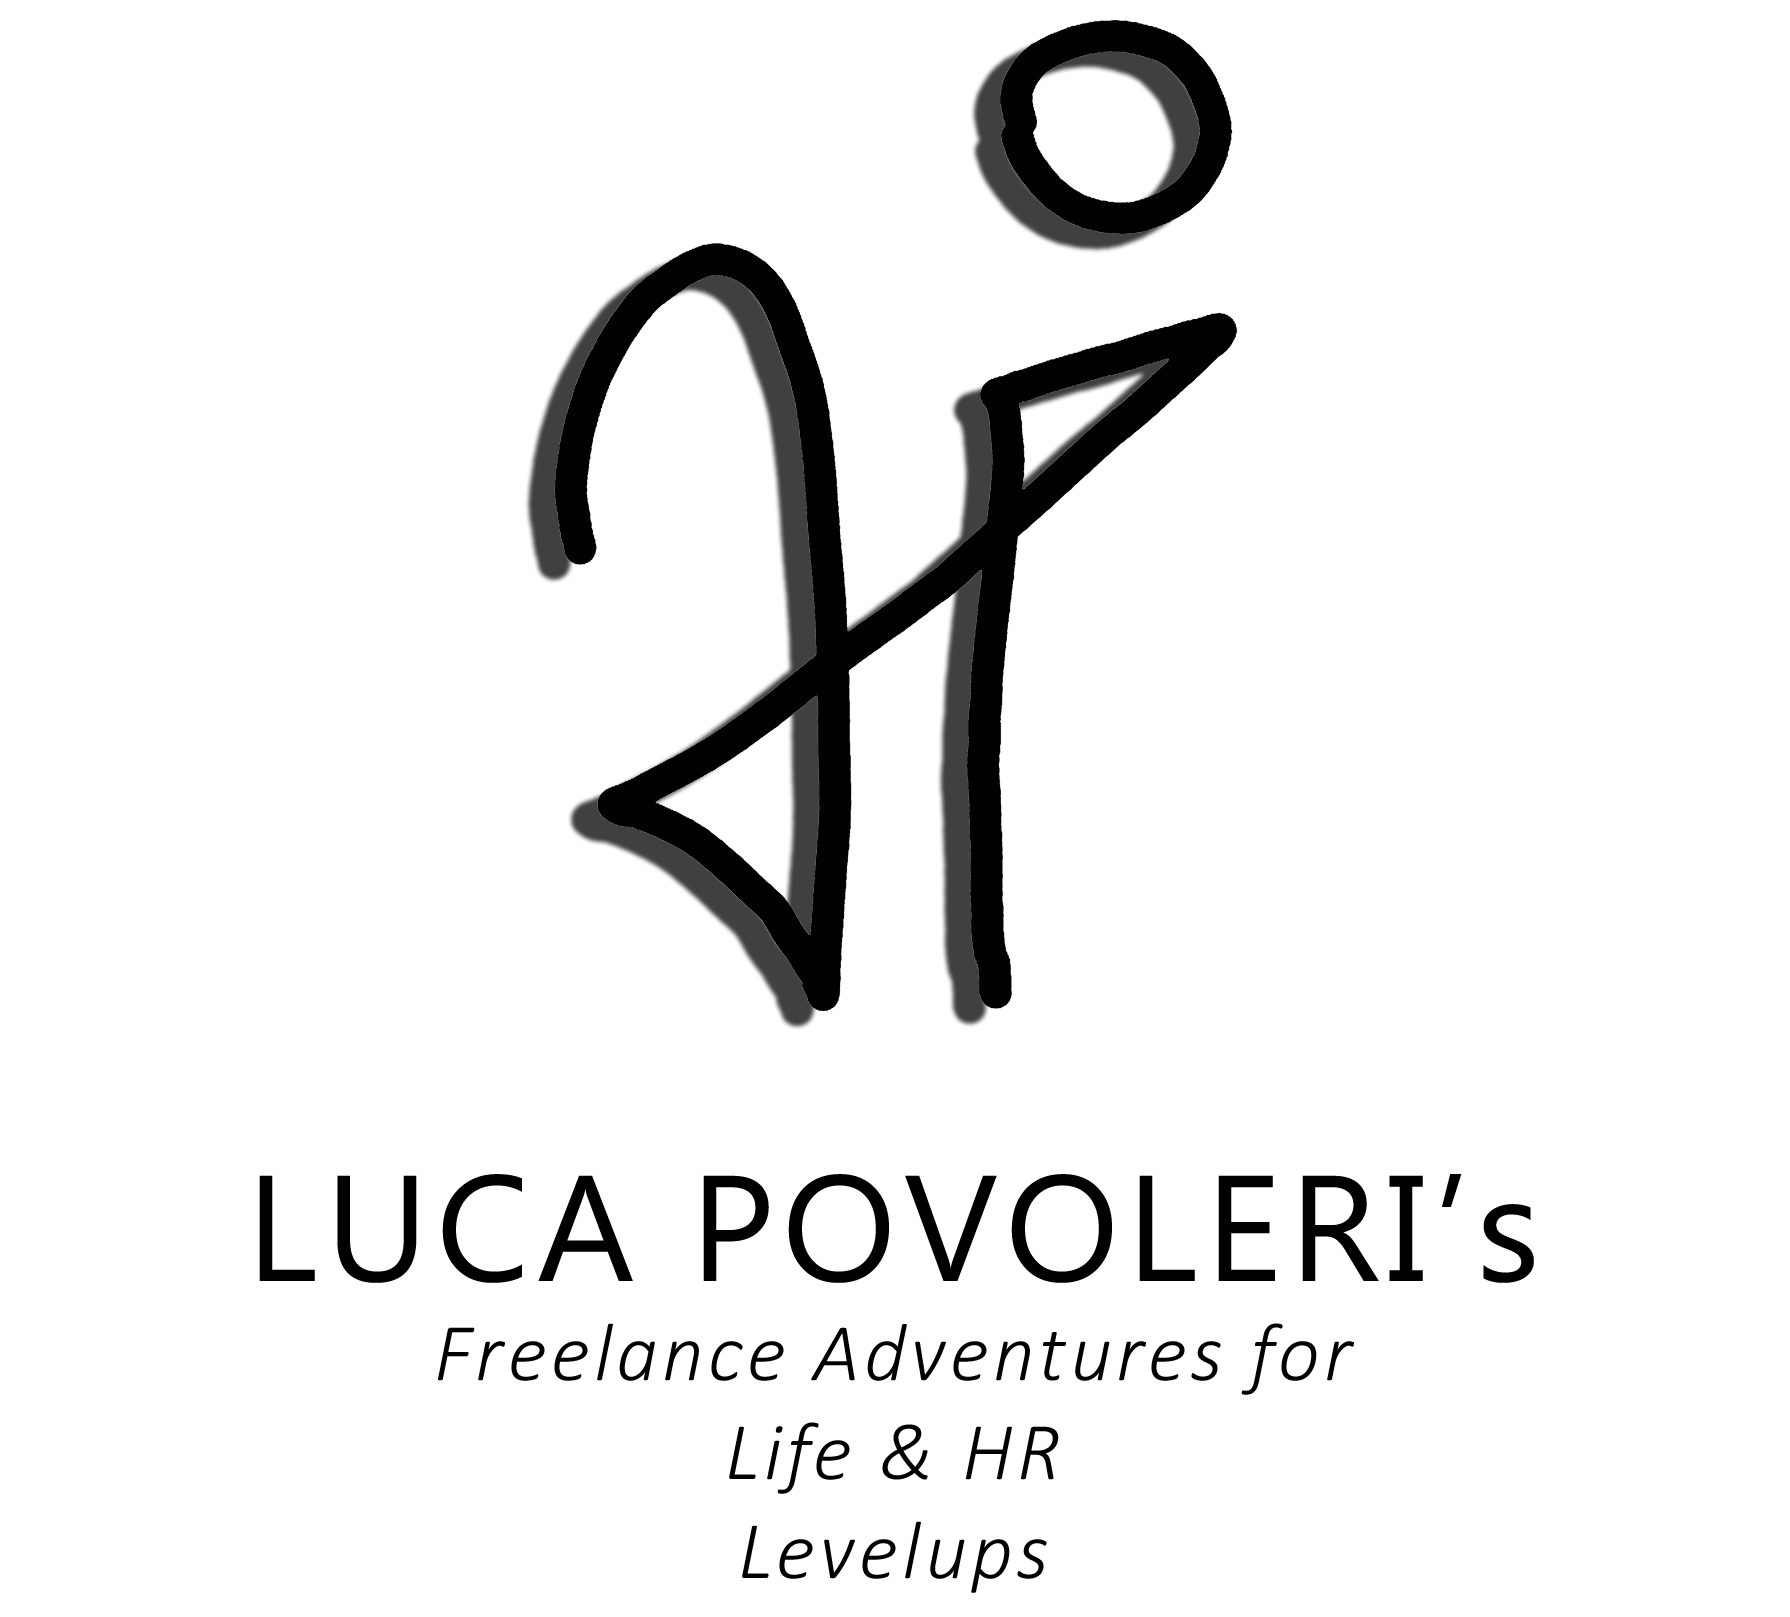 Luca Povoleri's Freelance Adventures for Life & HR Levelups